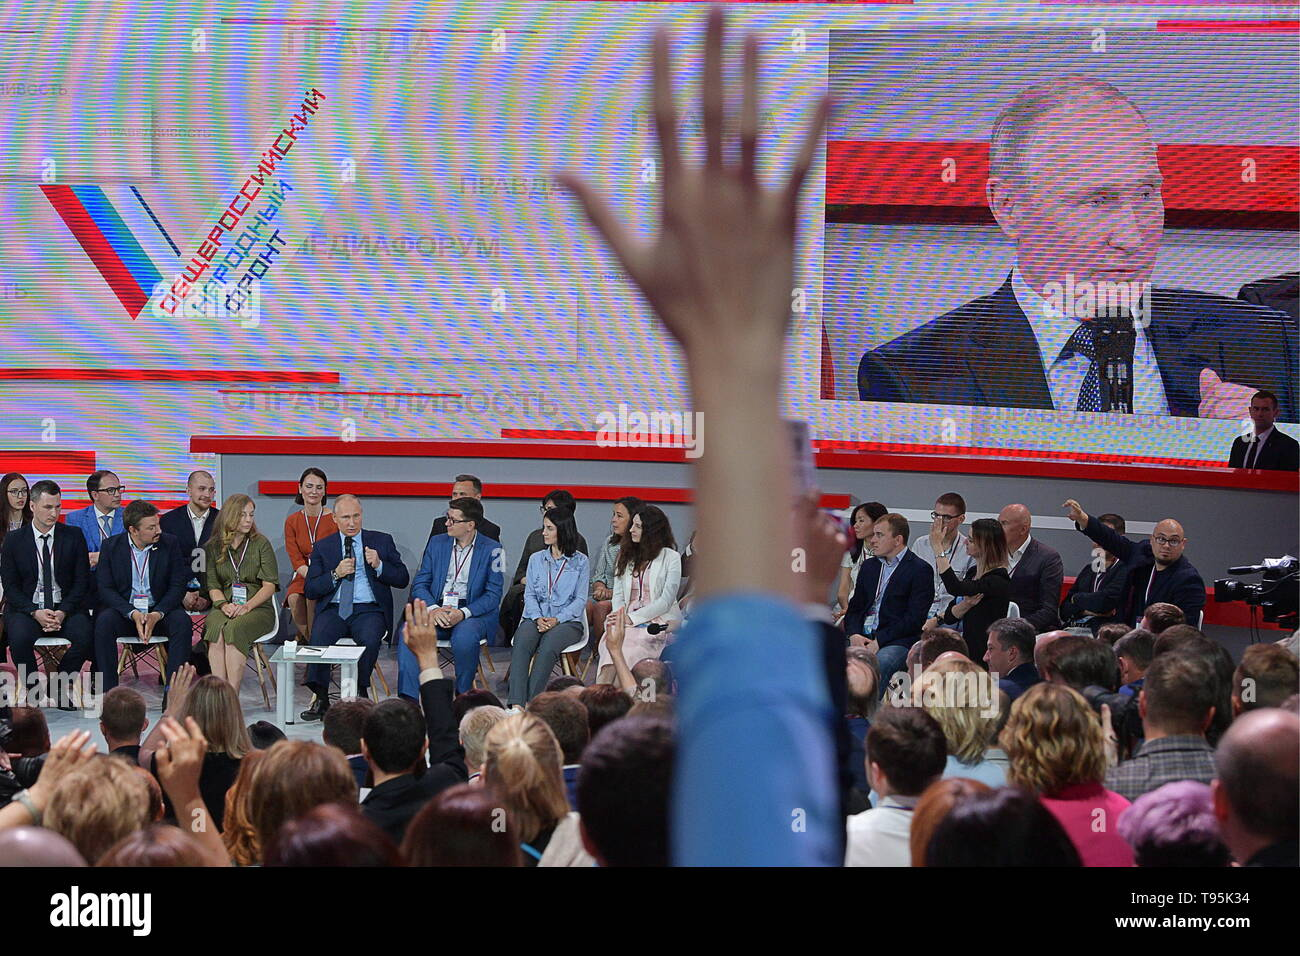 Sochi, Russia. 16th May, 2019. SOCHI, RUSSIA - MAY 16, 2019: Russia's President Vladimir Putin (4th L back) attends the plenary meeting at the 6th Independent Local and Regional Media Forum held by the All-Russian People's Front. Alexei Druzhinin/Russian Presidential Press and Information Office/TASS Credit: ITAR-TASS News Agency/Alamy Live News Stock Photo